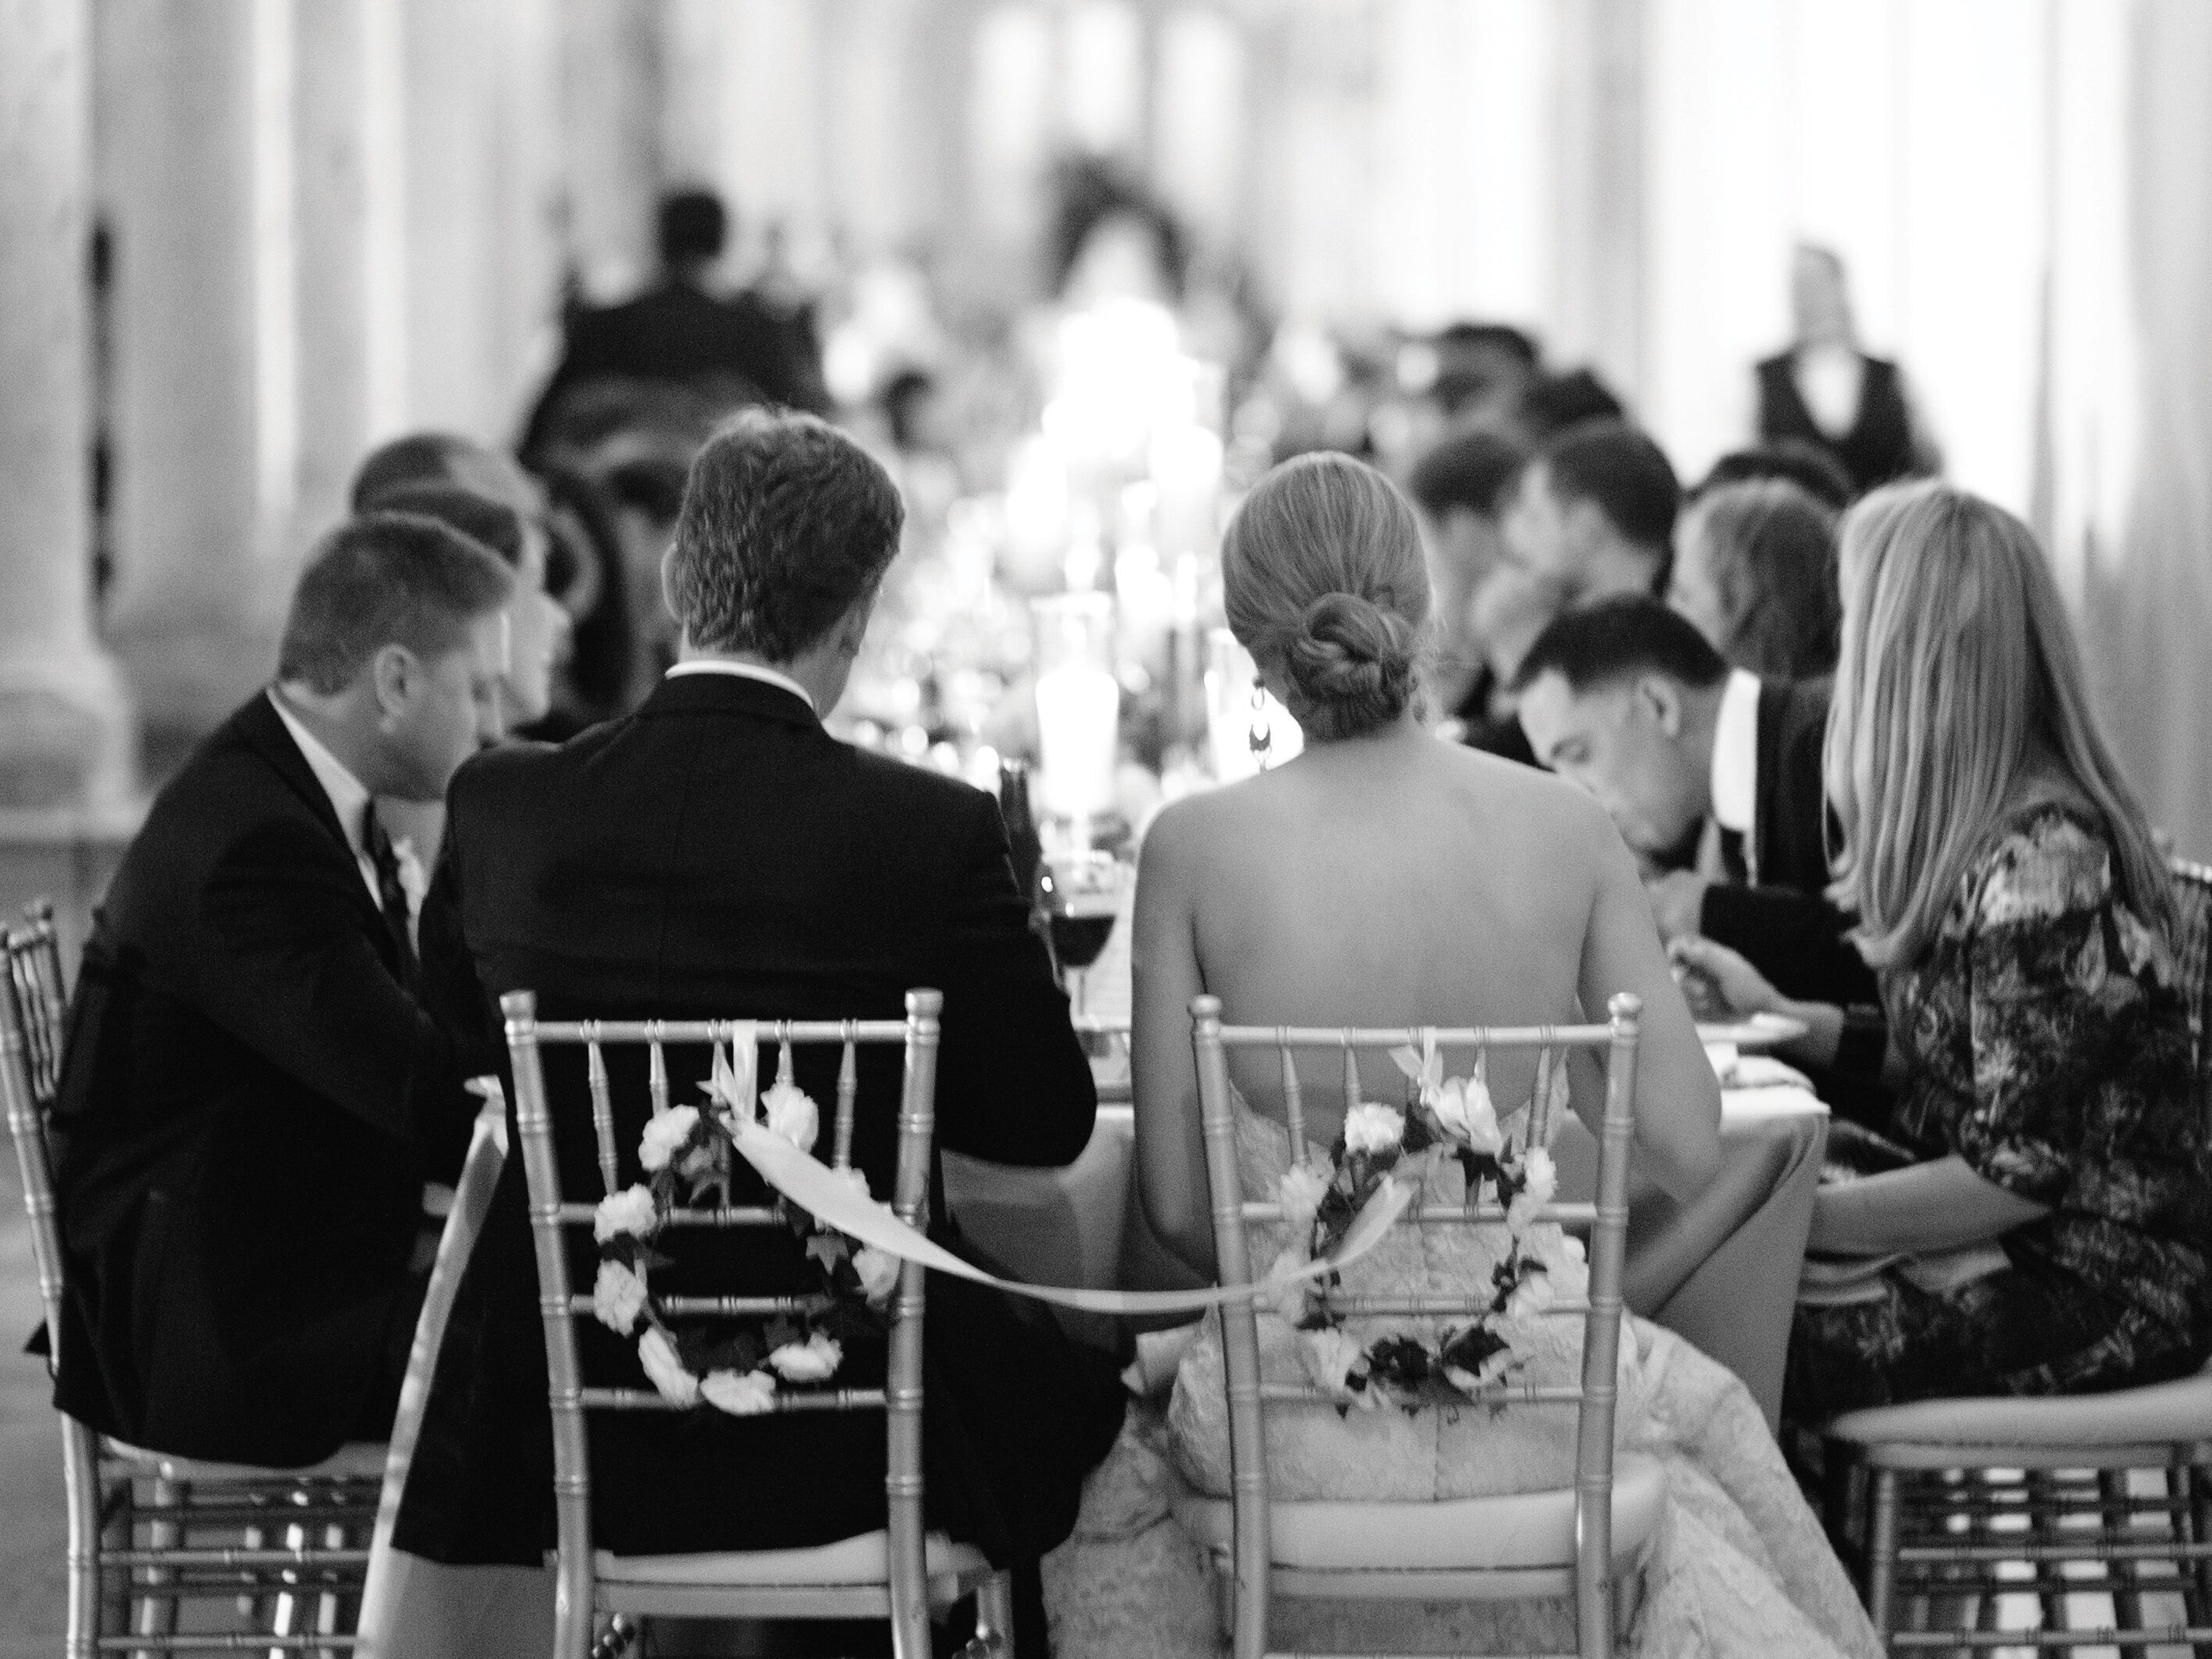 Wedding Receptions: A Traditional Wedding Reception Timeline